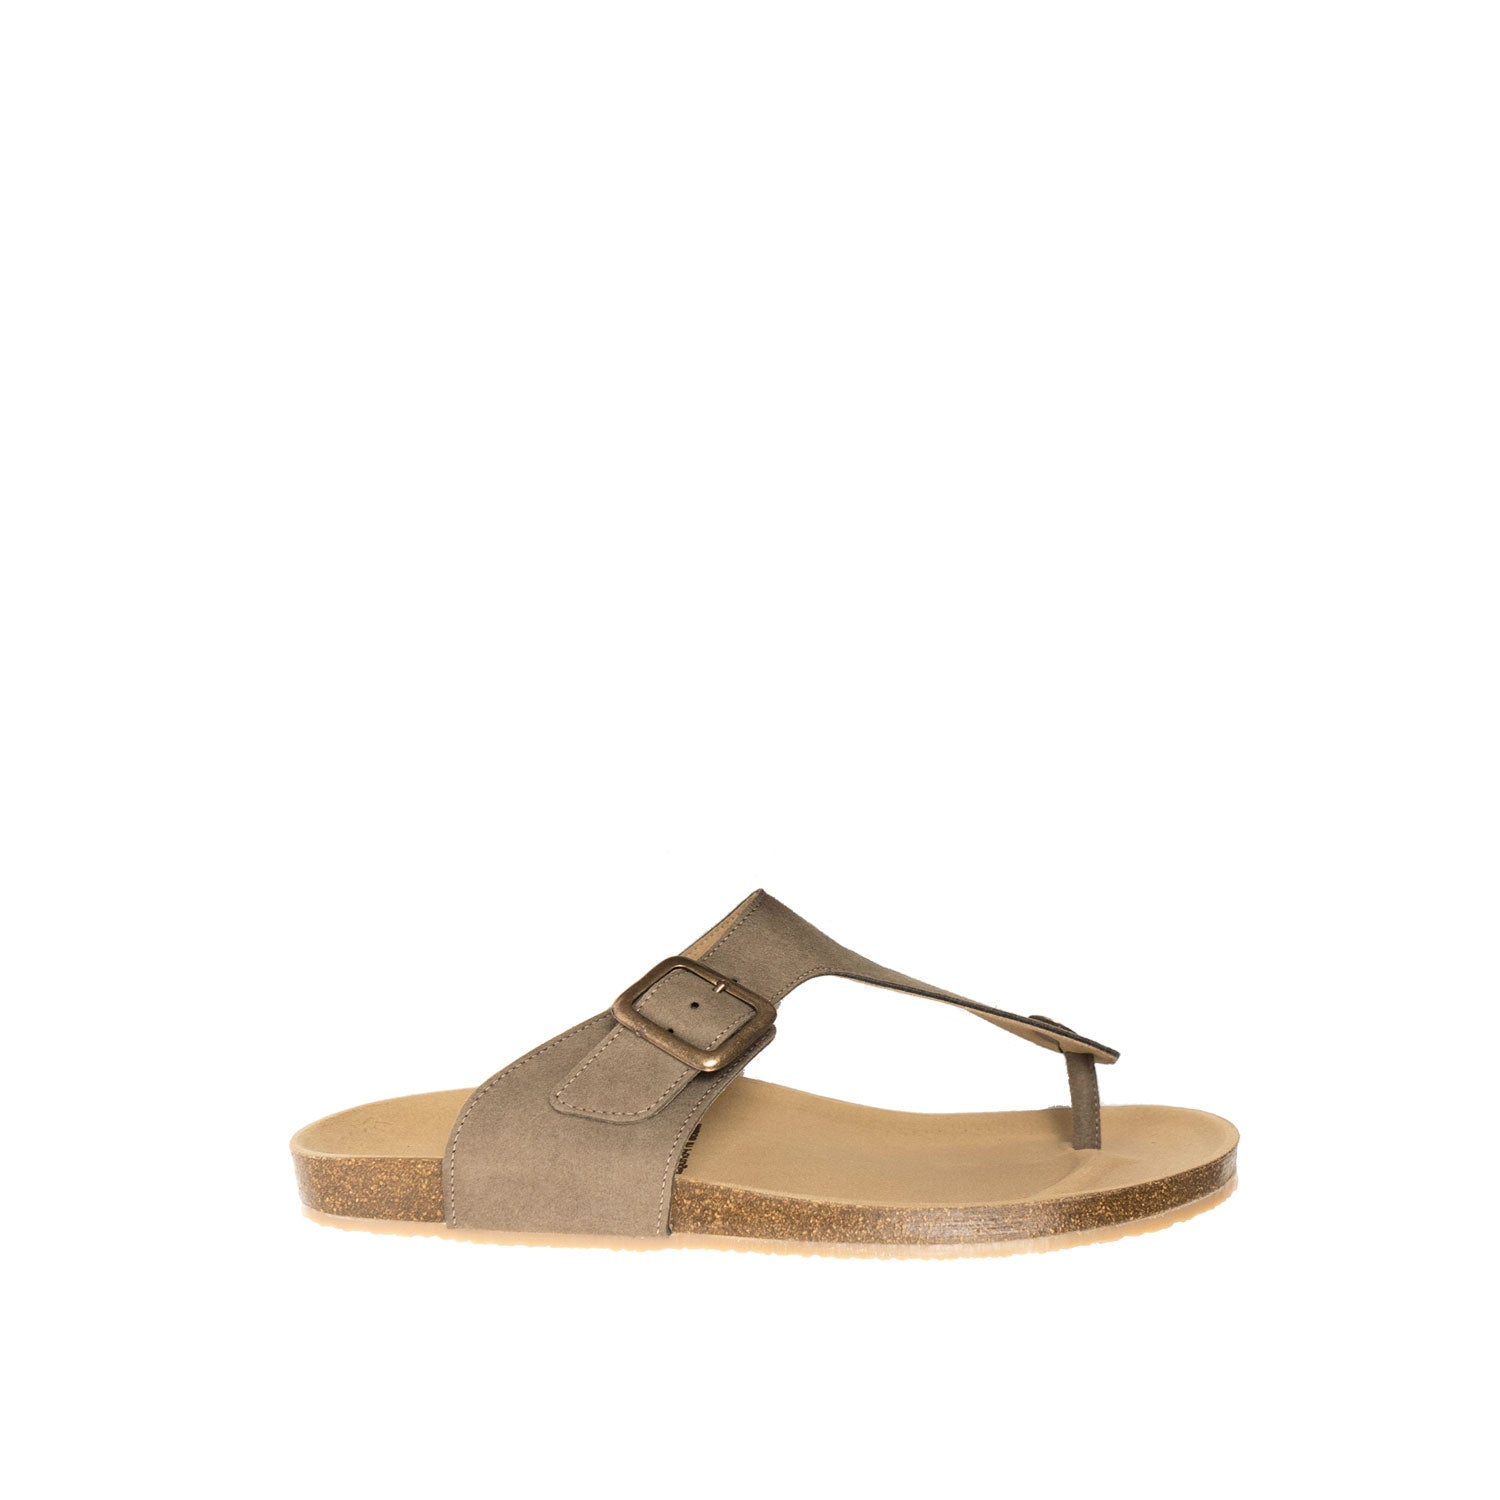 Toe Peg Footbed Sandals